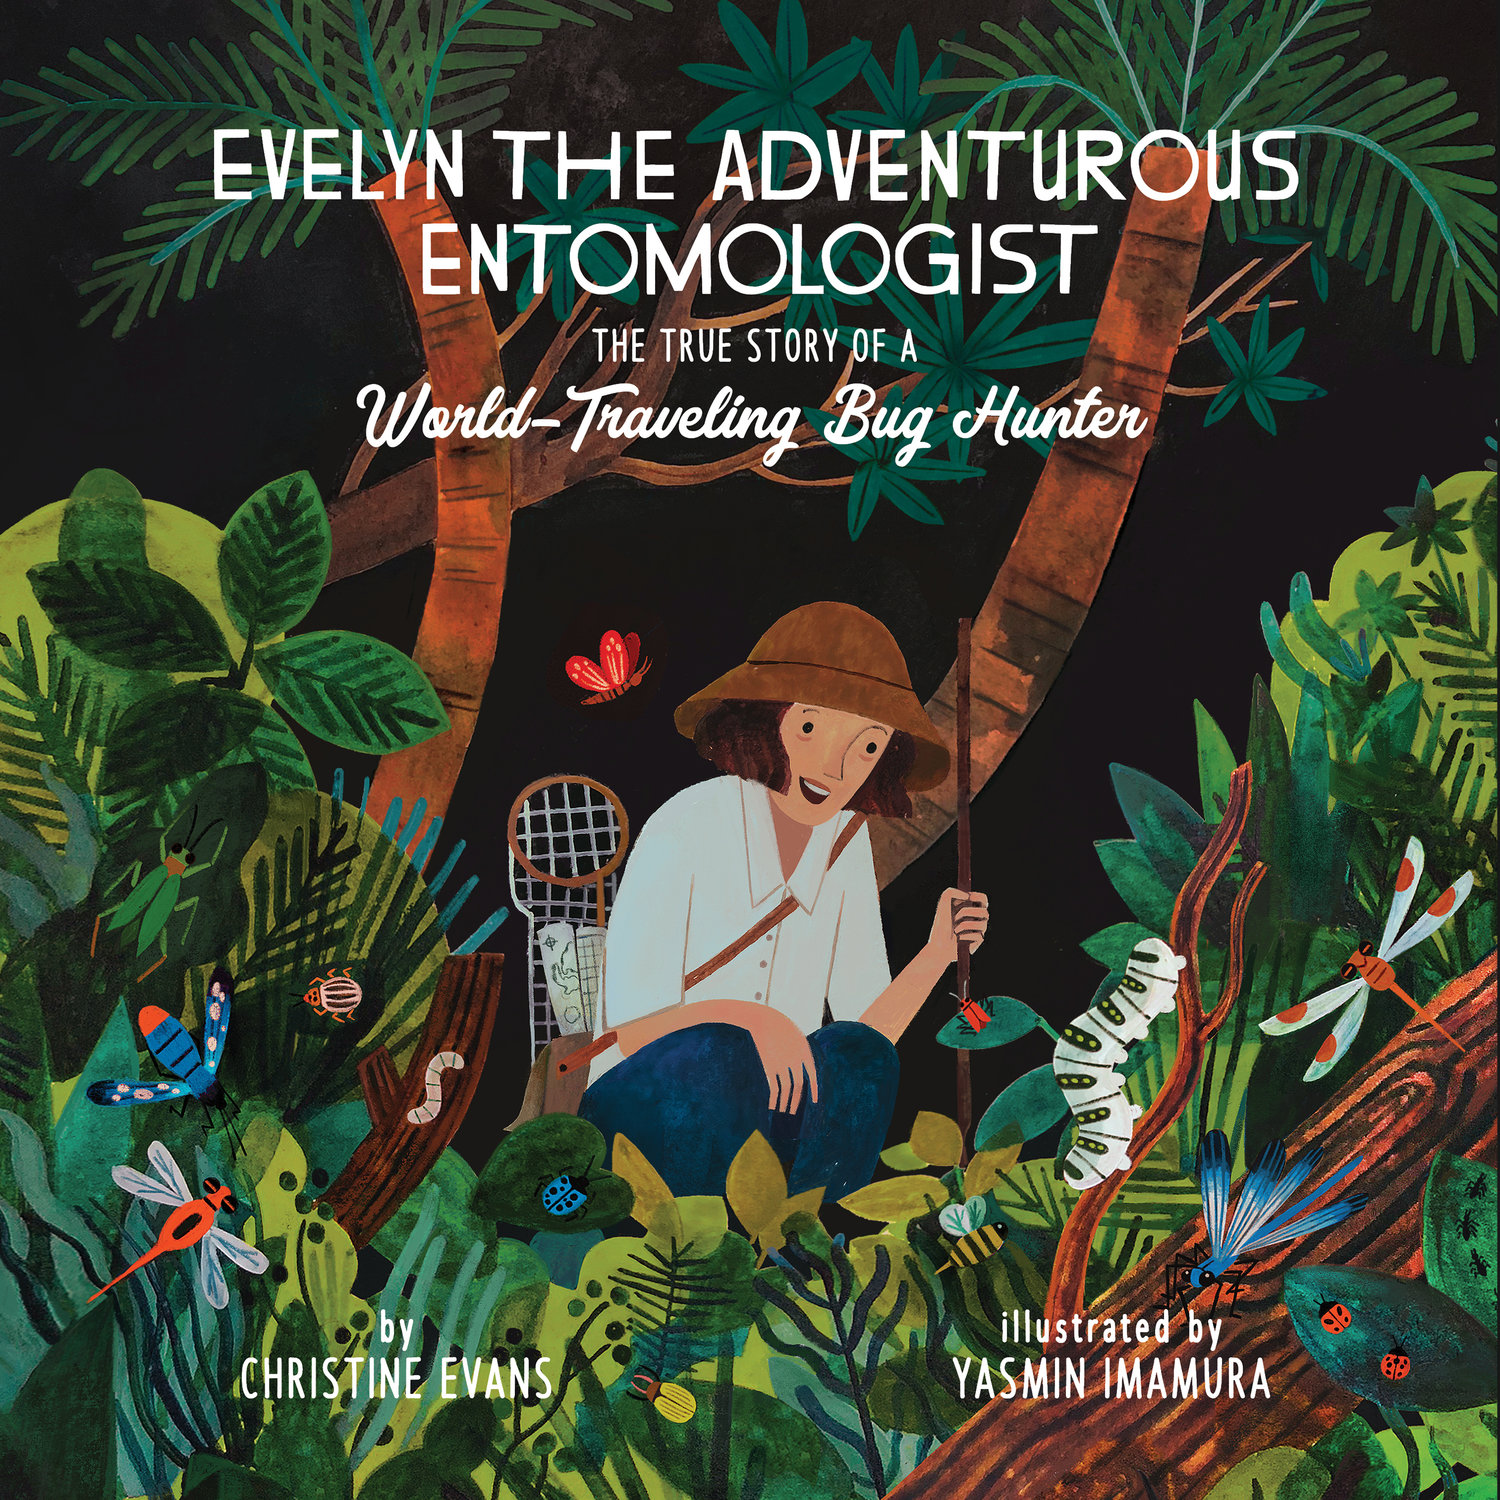 An illustration of a woman observing bugs in a jungle on the cover of a book